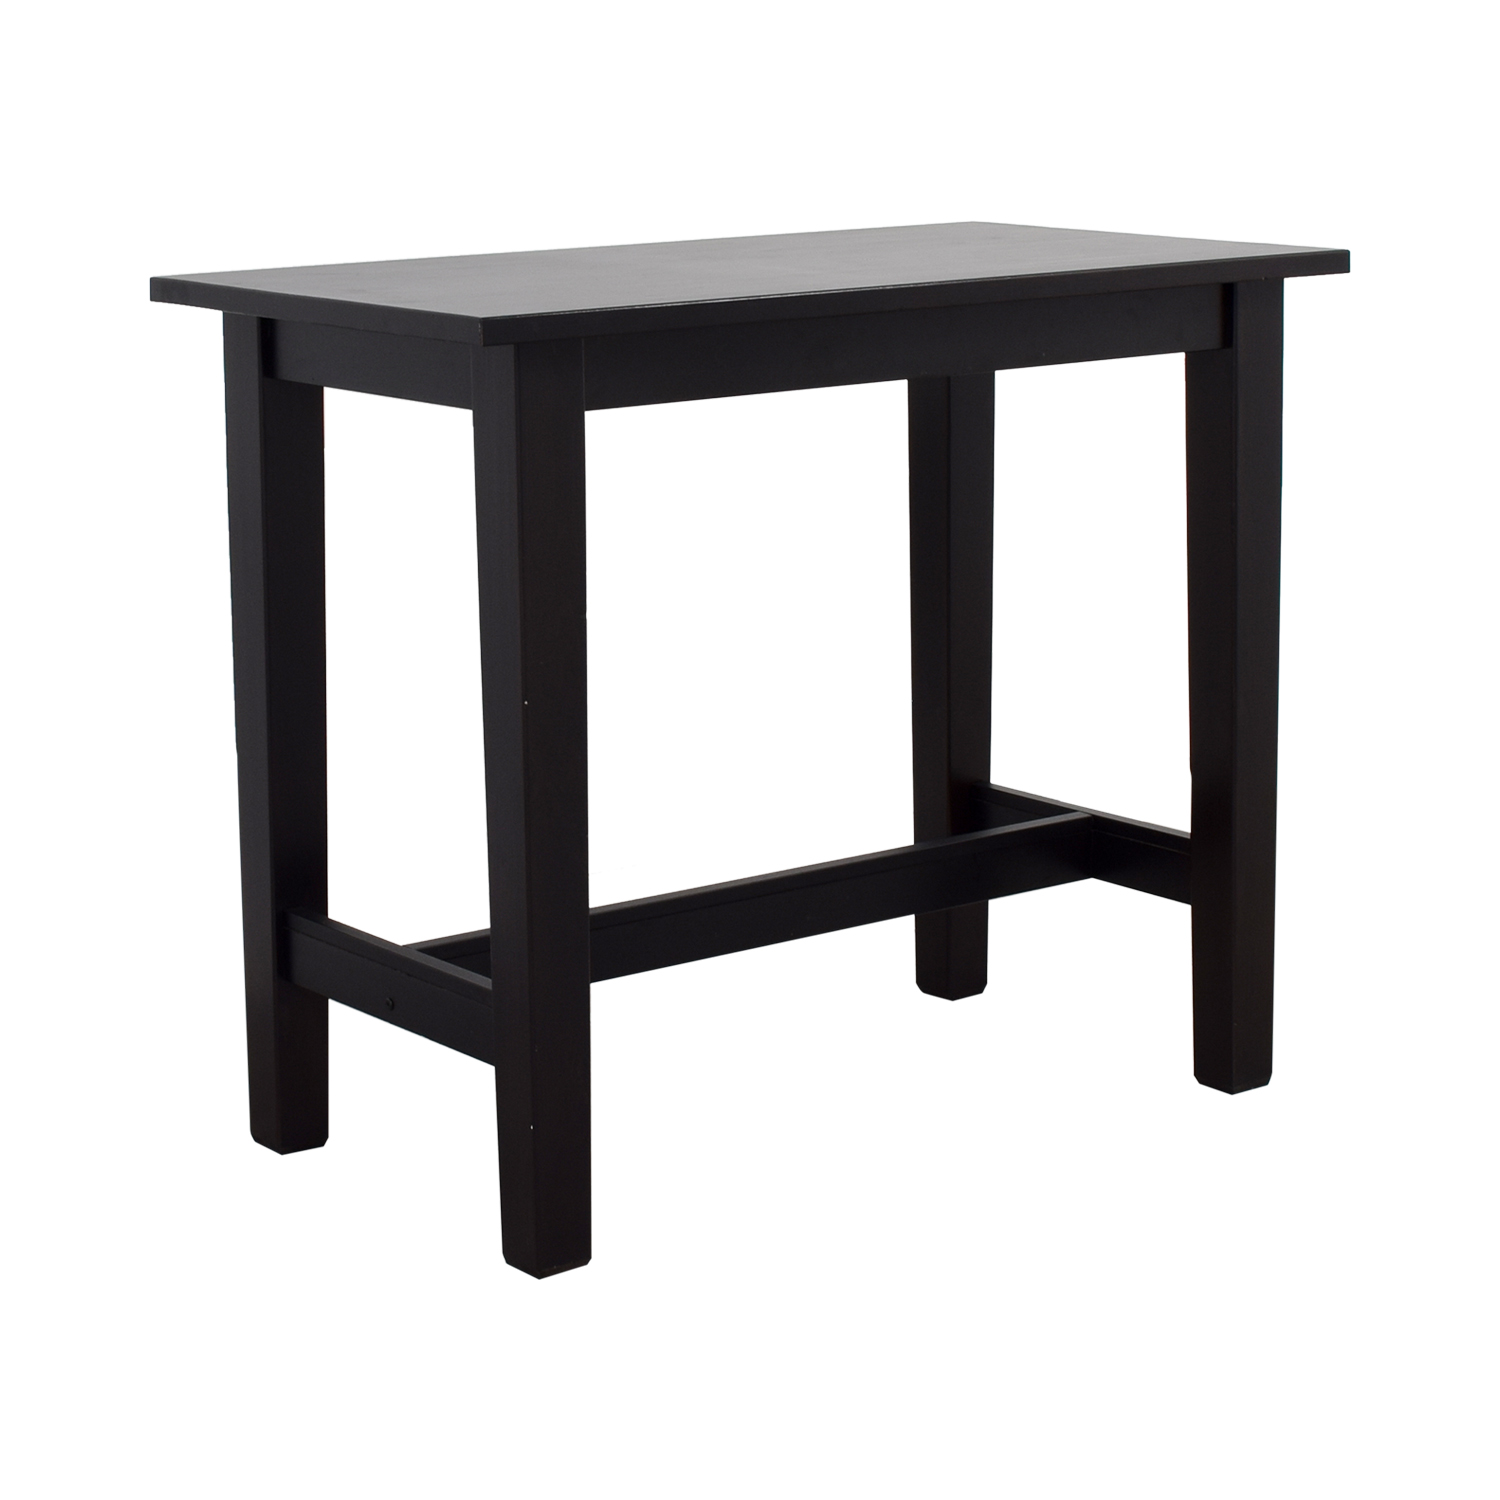 IKEA Pub Table / Tables